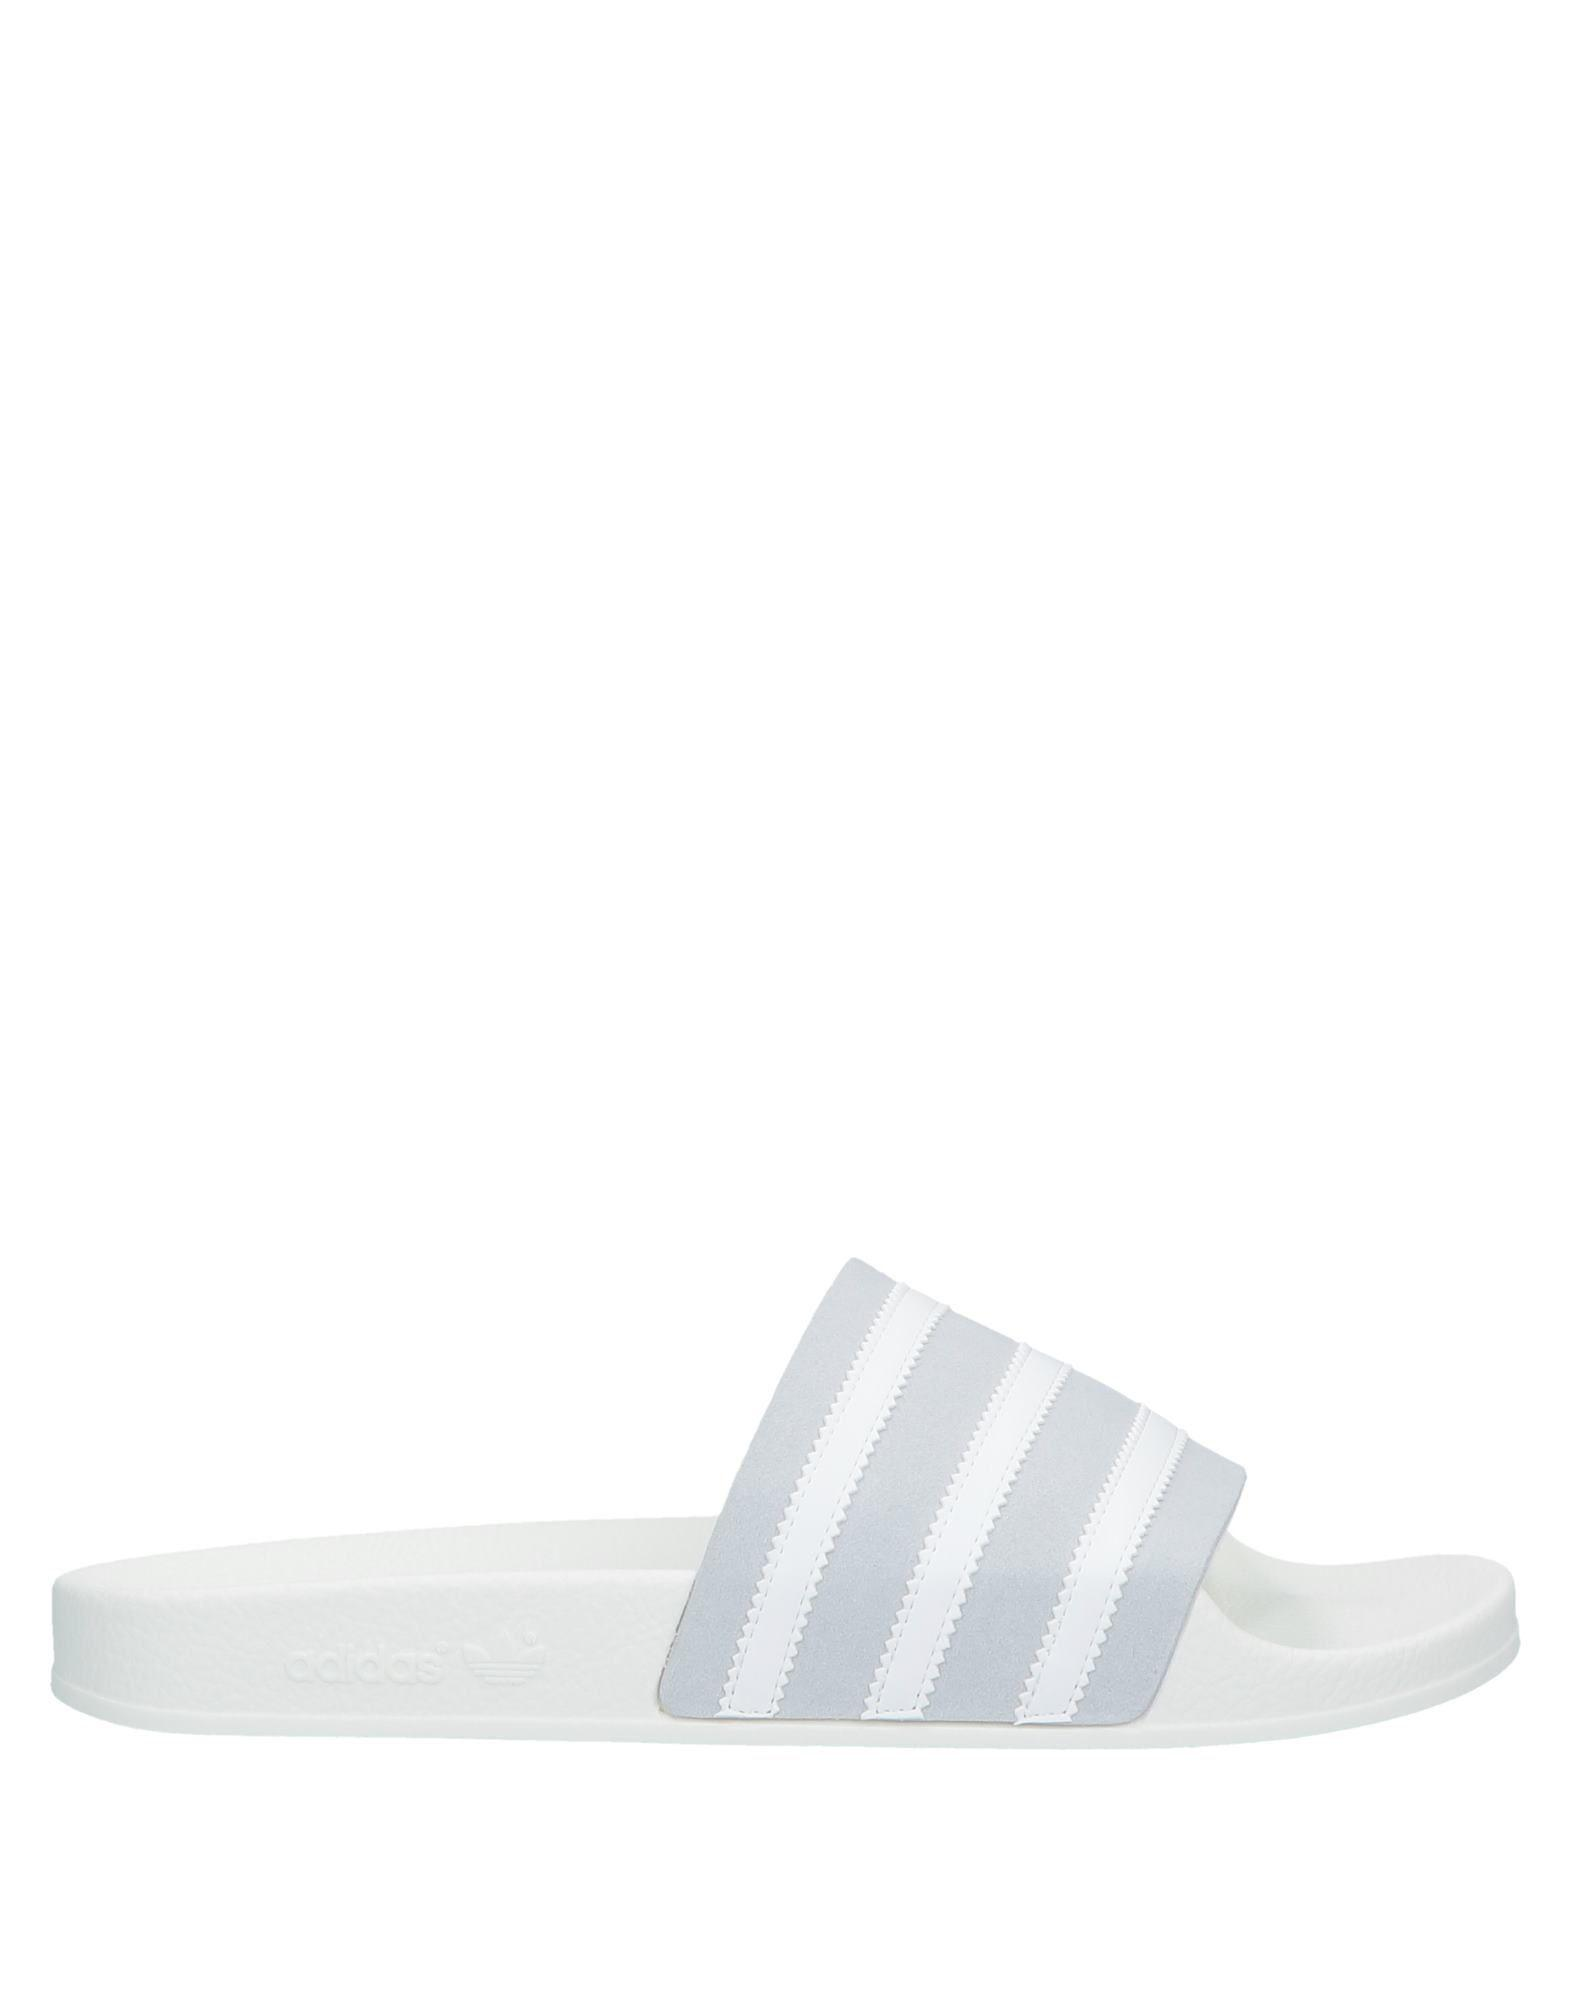 5a50d30aa181 adidas Originals Sandals in White for Men - Lyst